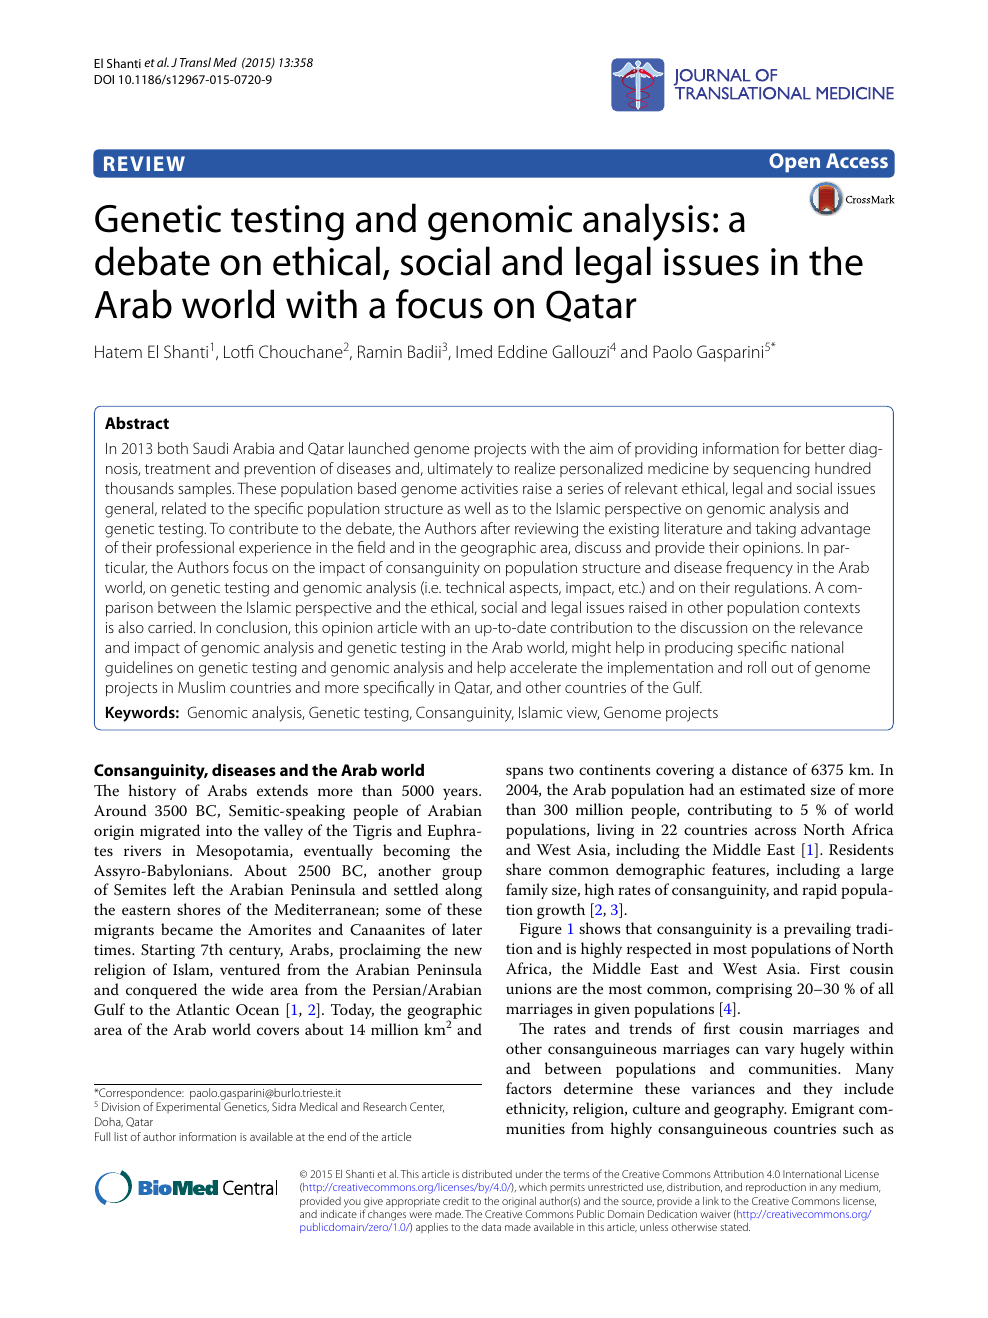 Genetic testing and genomic analysis: a debate on ethical